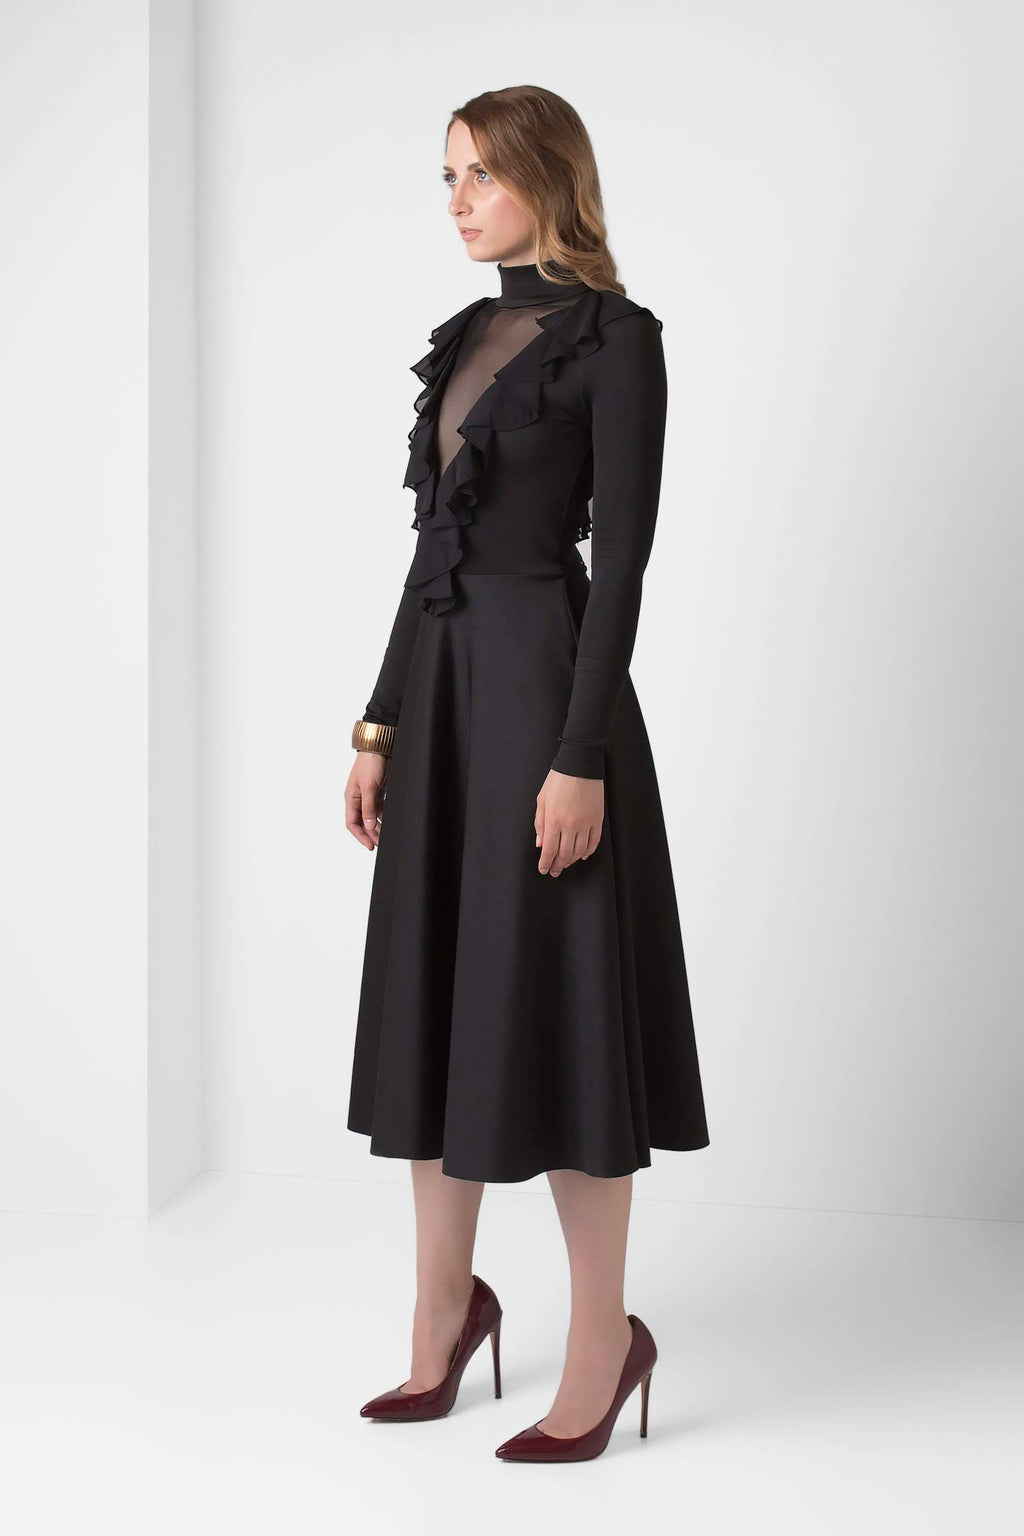 Black Long-sleeve Fit and Flare Dress - pacorogiene